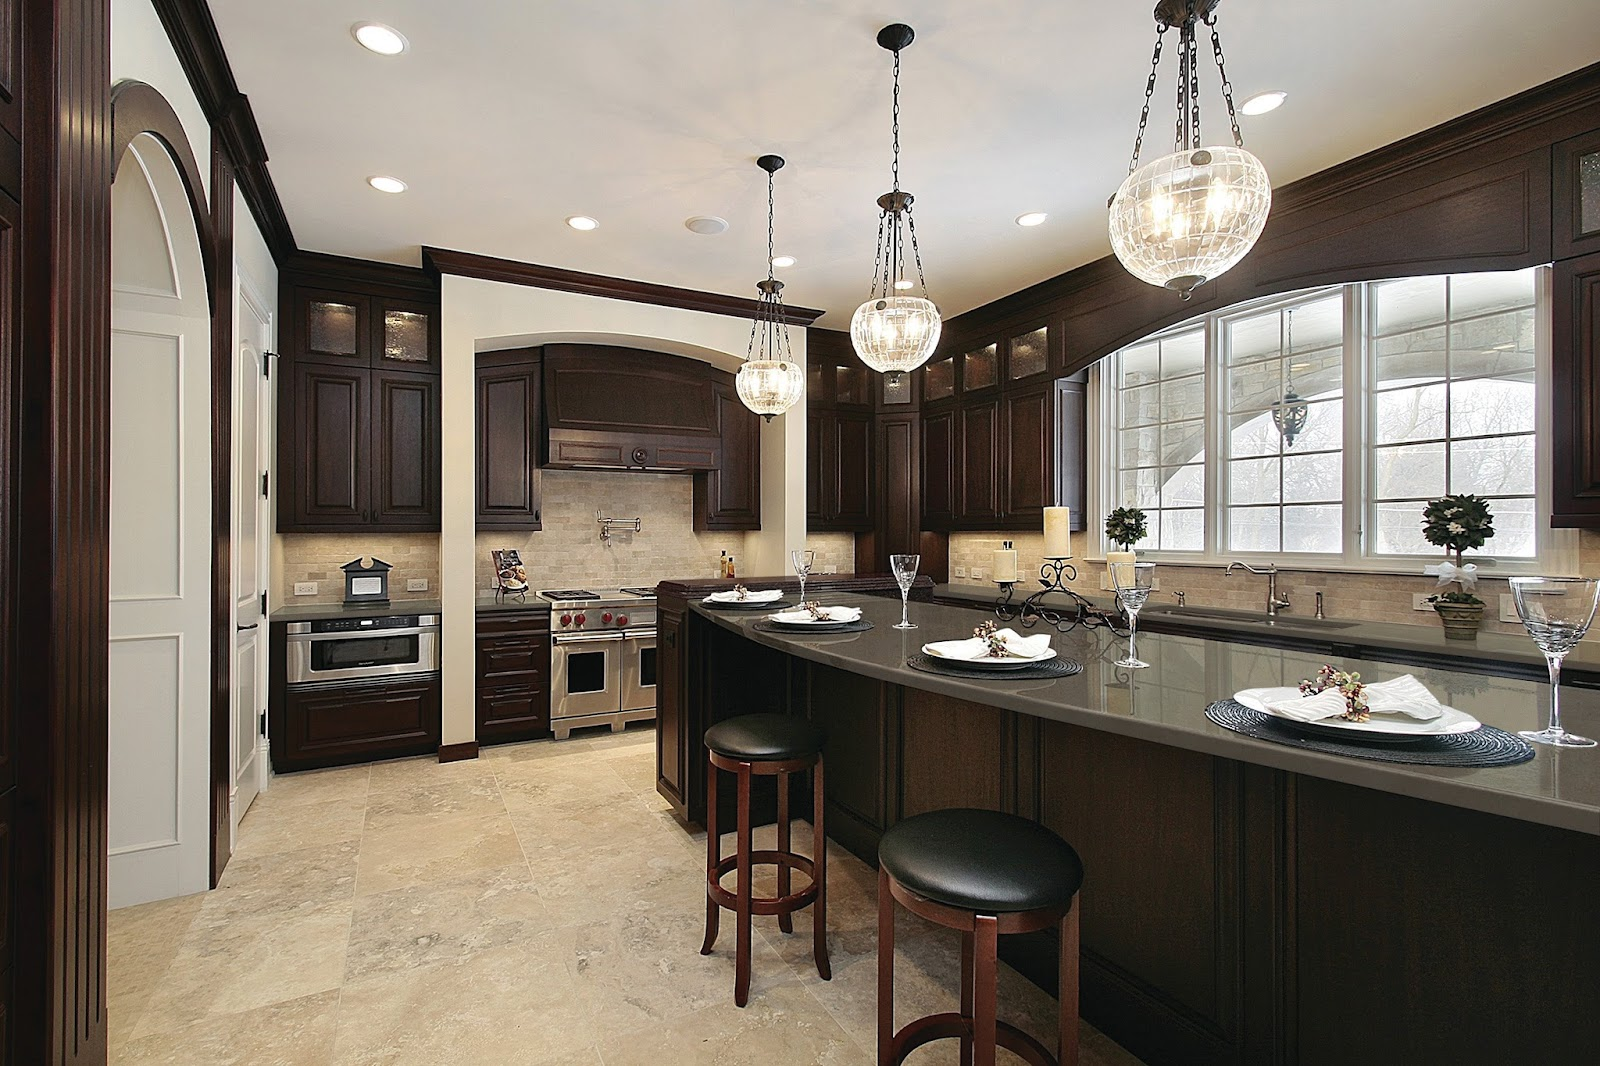 Kitchen Island Options Pictures Ideas From Hgtv: The Architectural Surface Expert: Elements Featured On